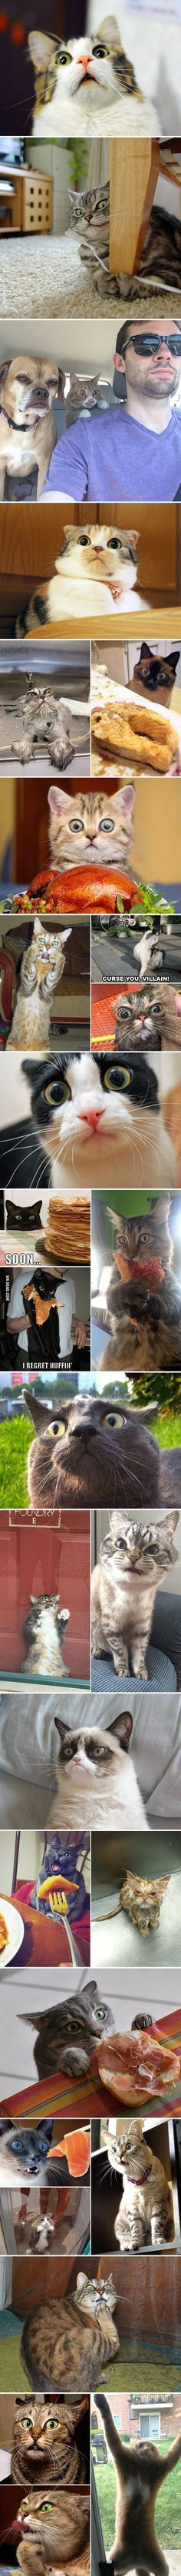 Cats are probably the most dramatic animals in the world...